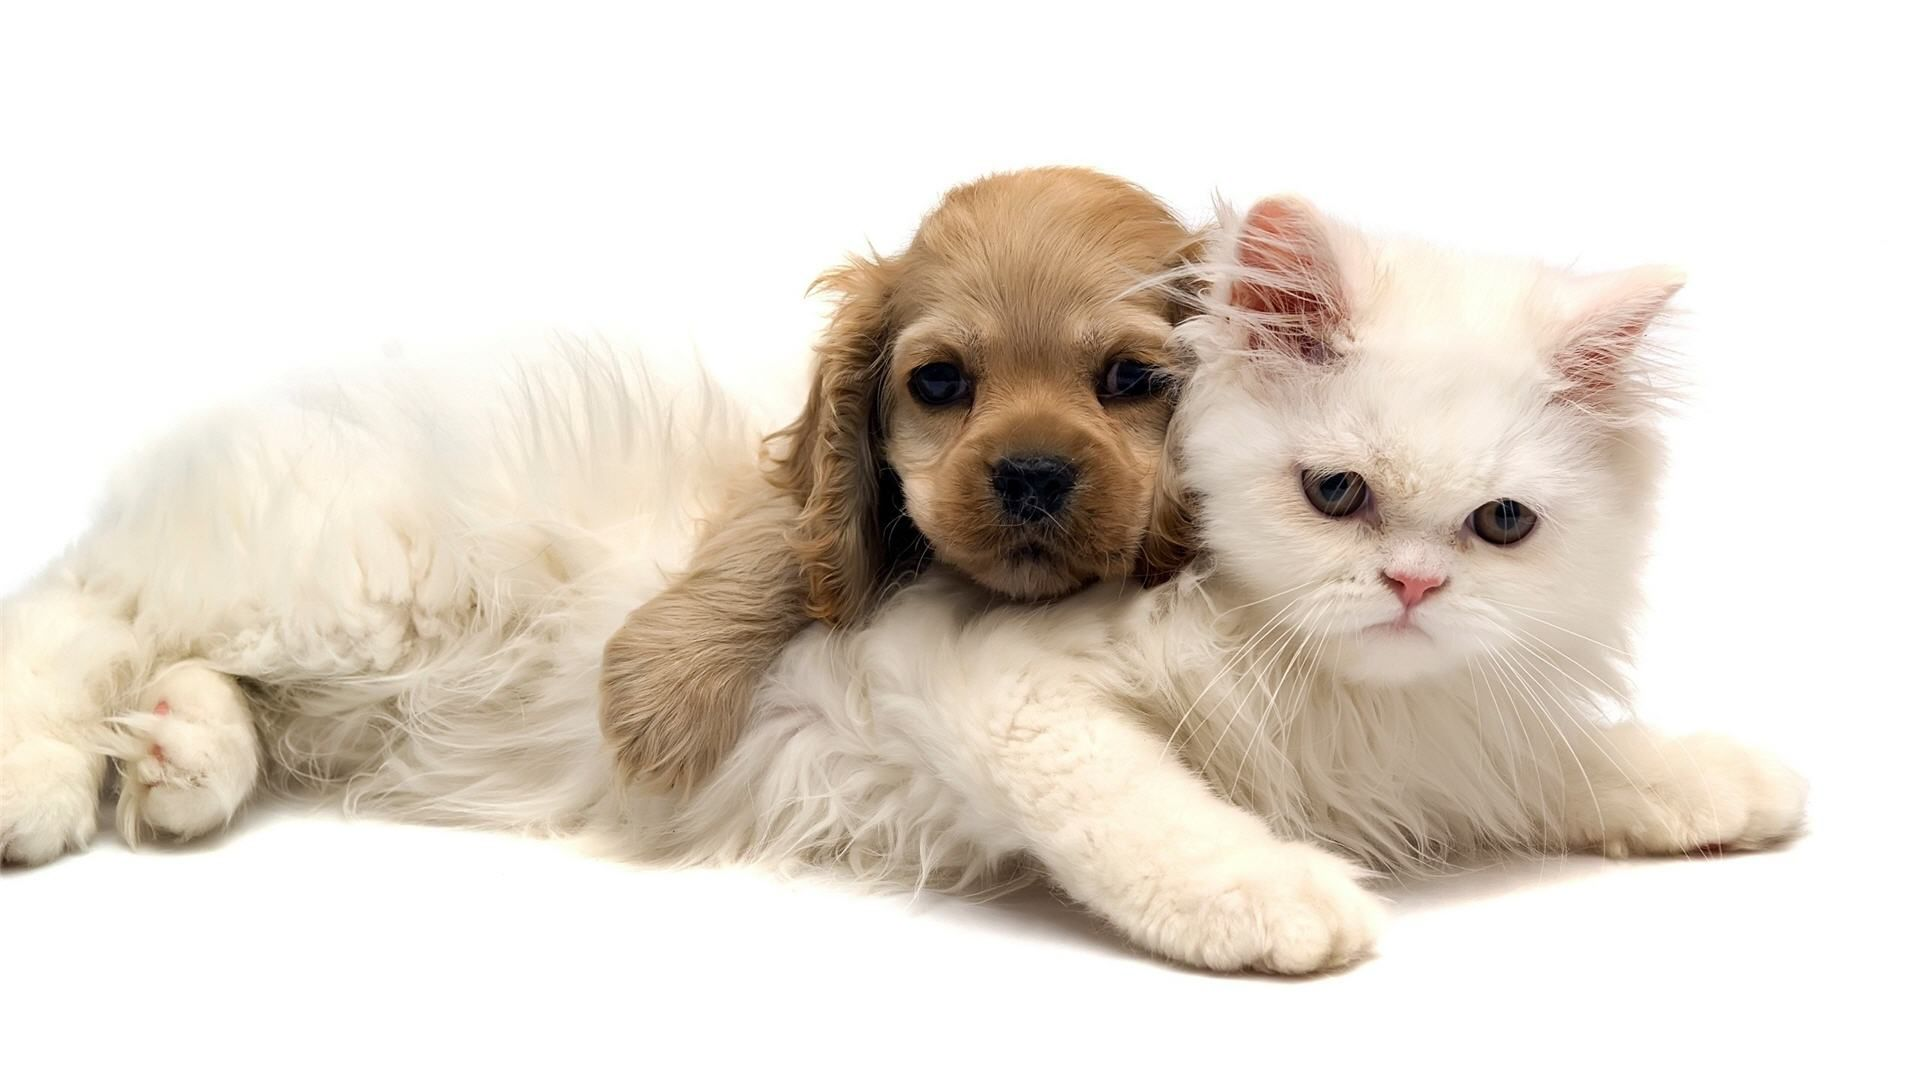 adorable cat and dog wallpaper | wallpapers green cat cute and dog